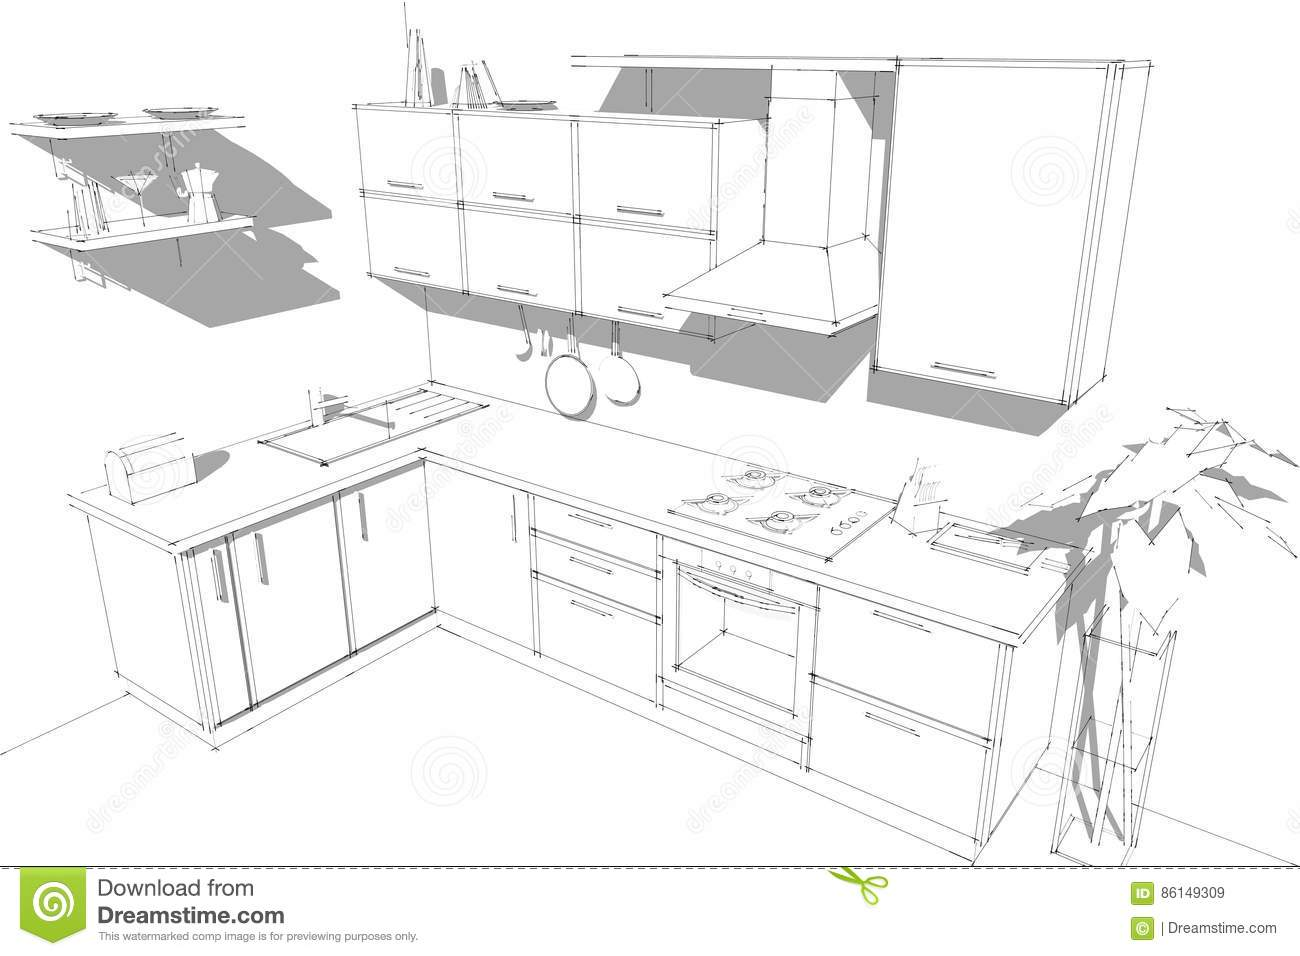 Sketch Abstract Contour Drawing Of 3d Modern Corner Kitchen Interior